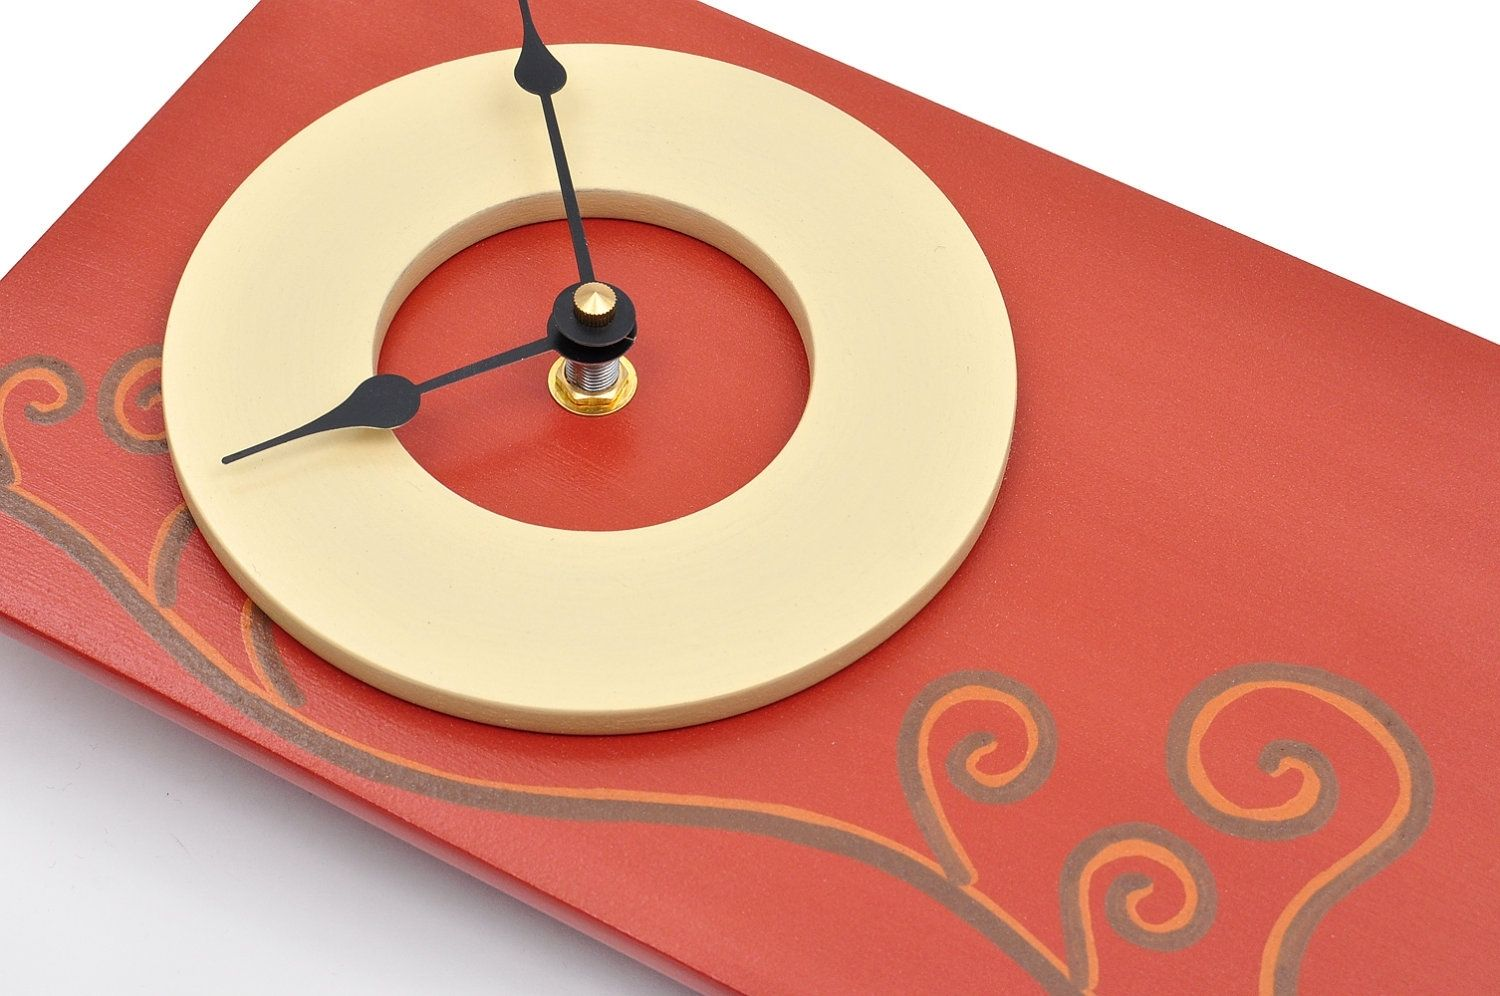 Hand Crafted Pendulum Wall Clock - Red-Orange Spiral Design ...